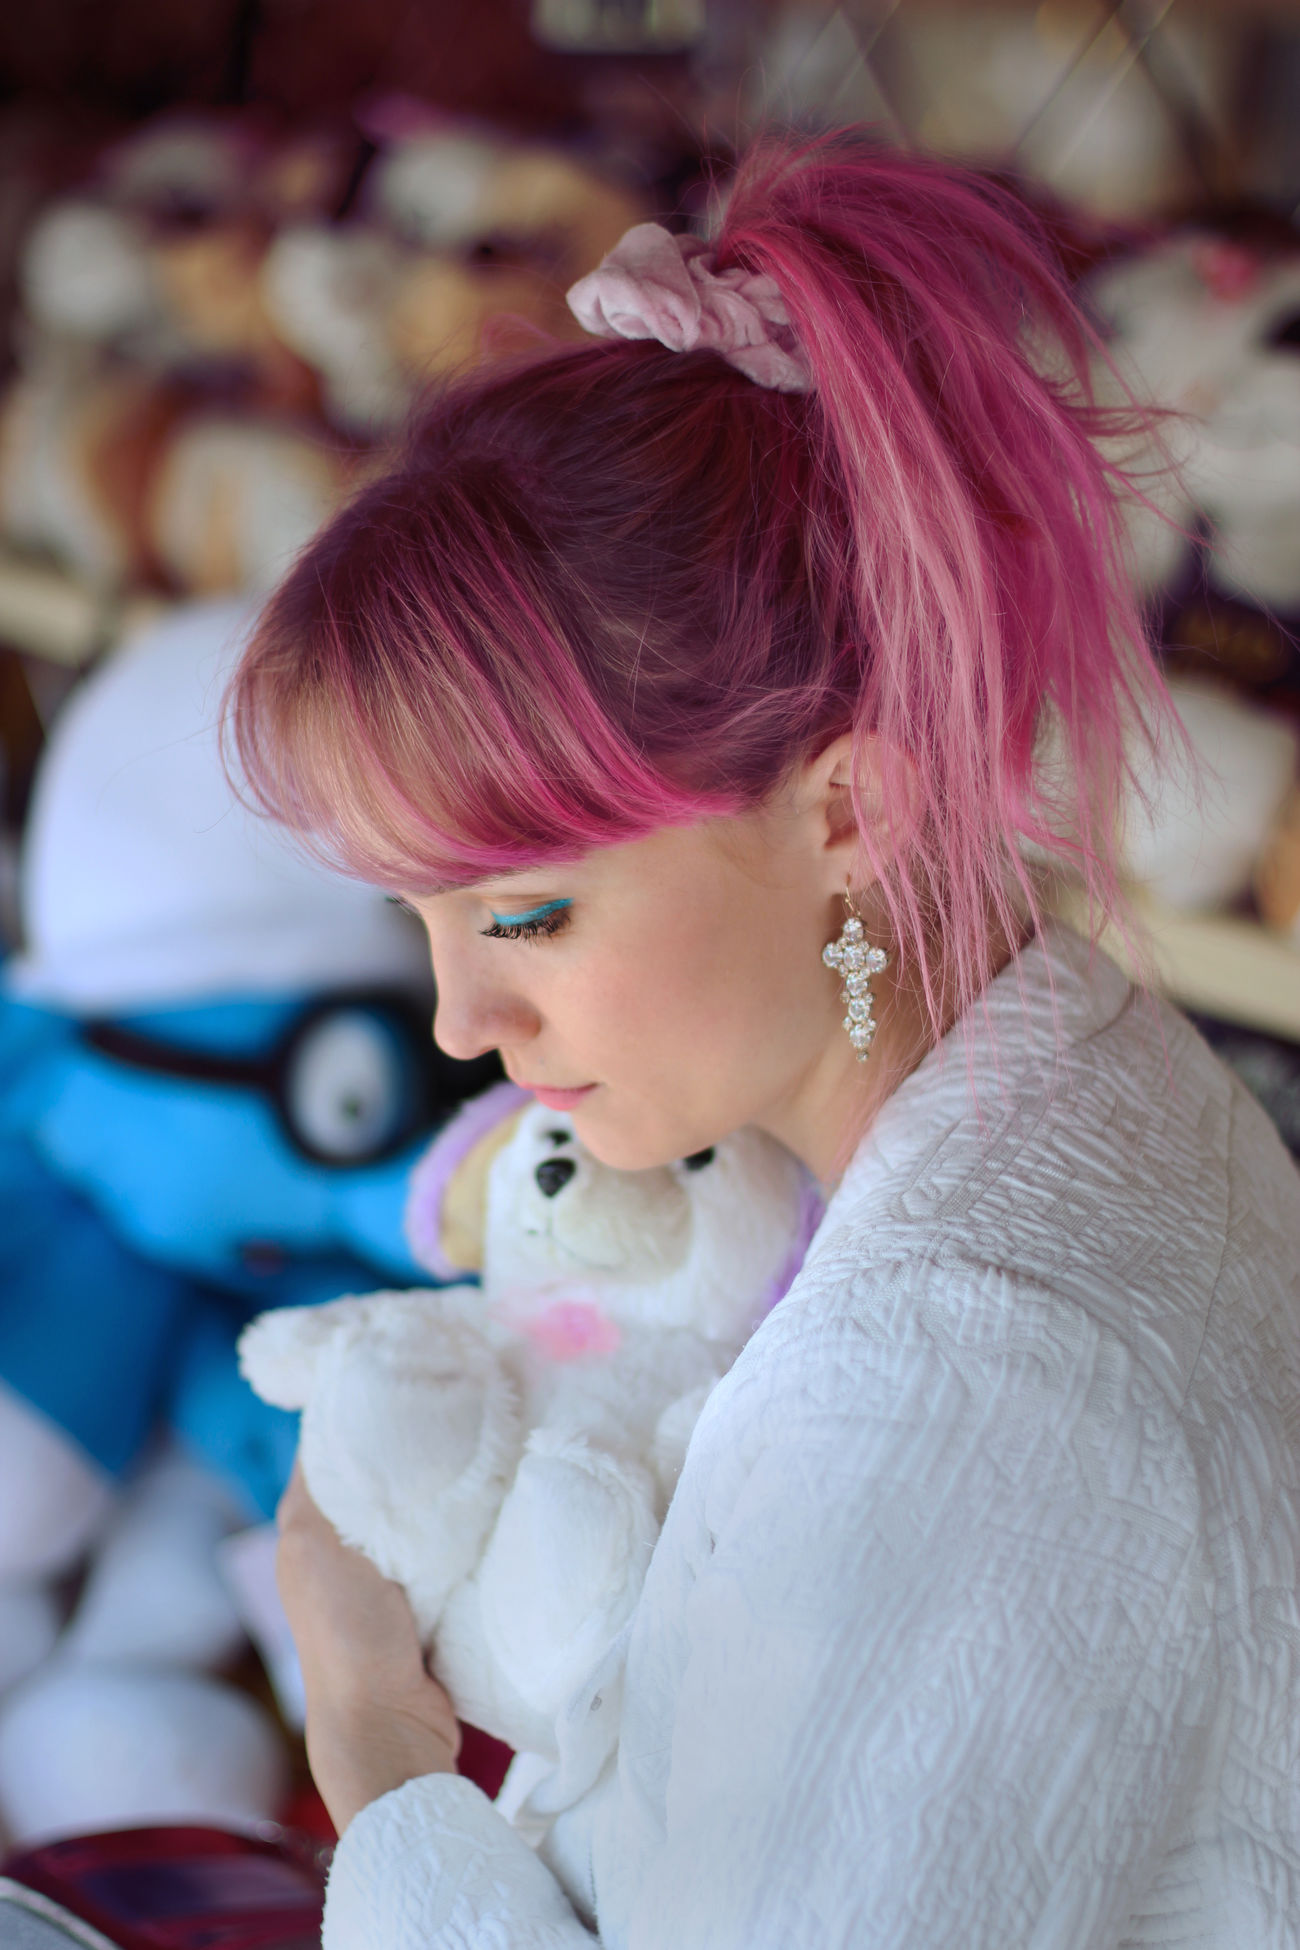 Bangs Cuddle Cute Cuteness Cuteness Overload Dyed Hair Fluffy Toys Girl People Pink Pink Hair Portrait Toys